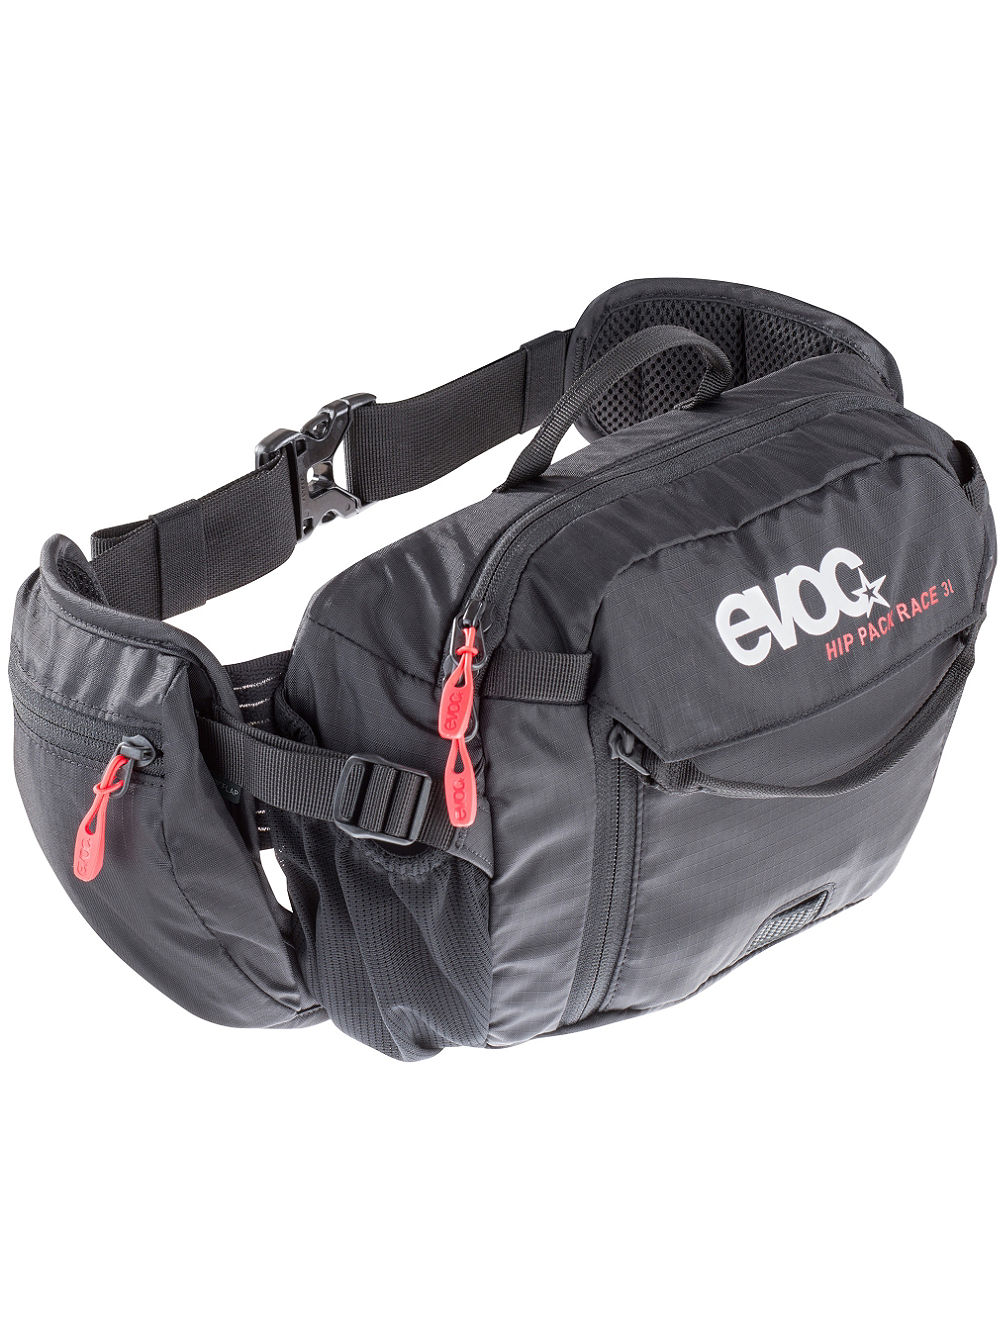 Hip Pack Race 3 L Backpack